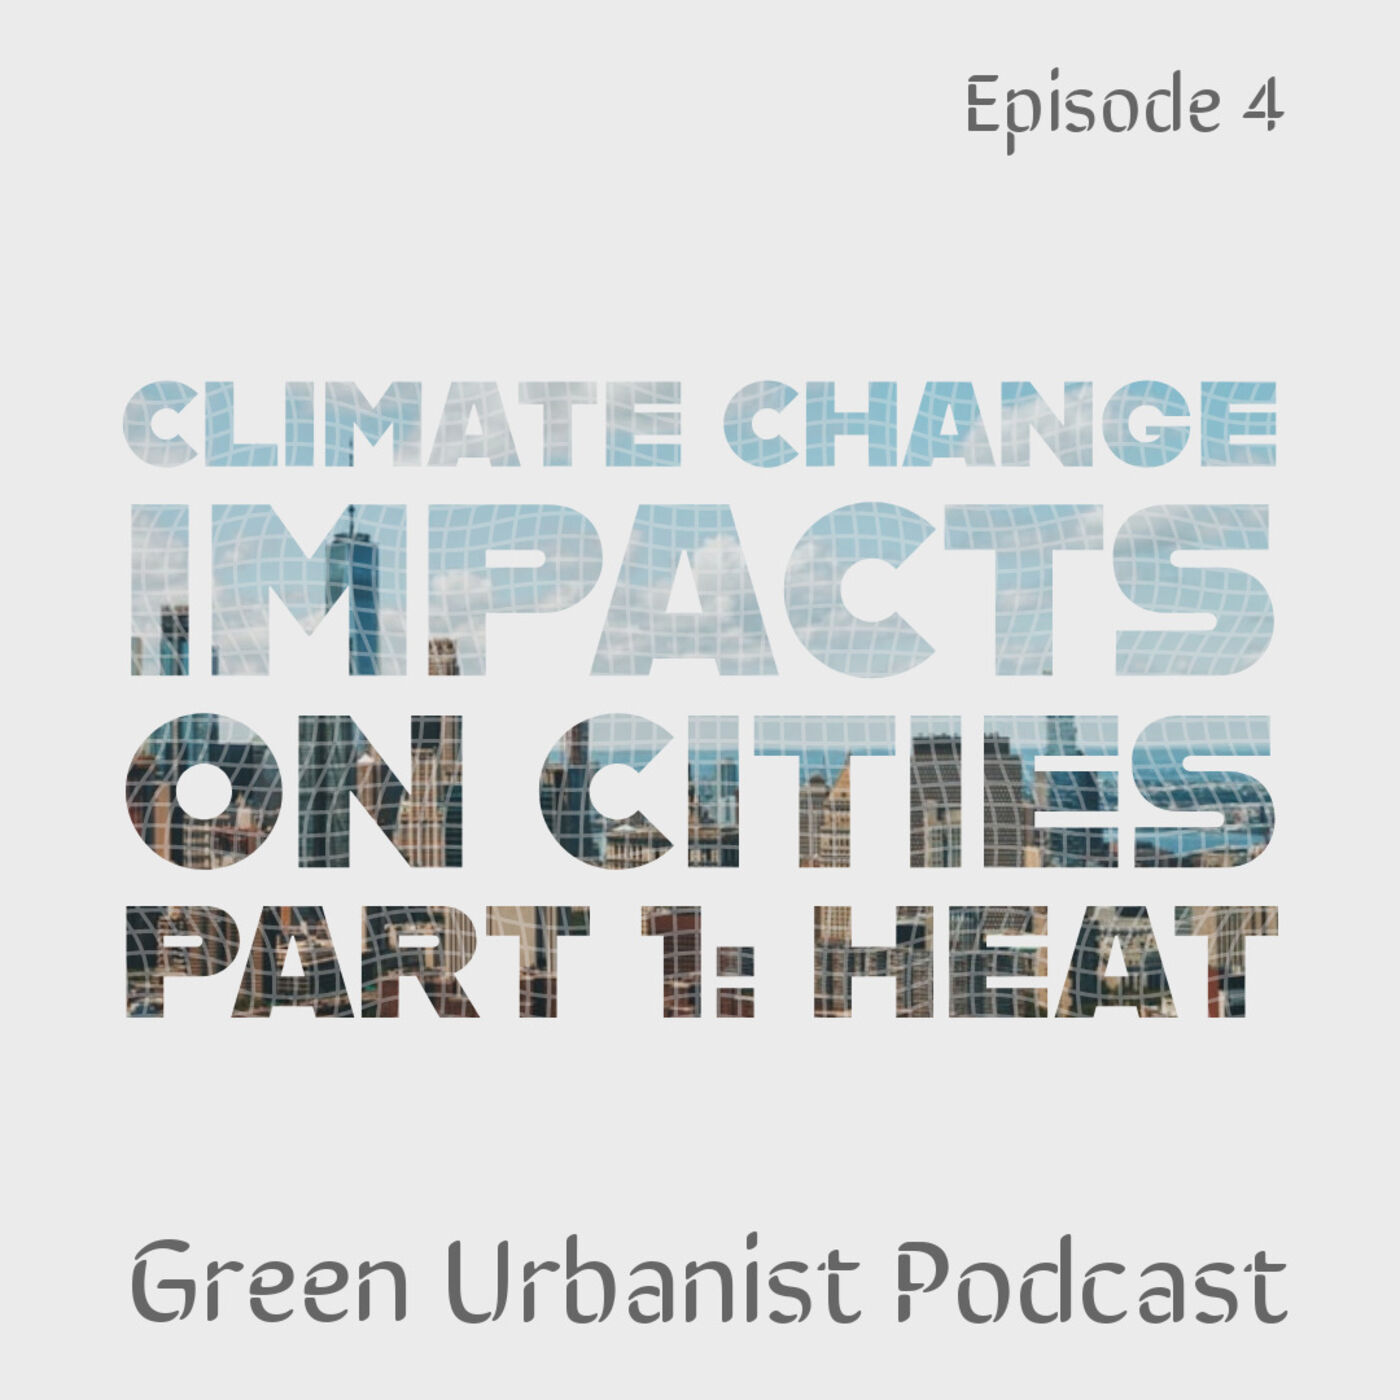 #4: Climate Change in Cities - Part 1: Heat Waves, Water Shortage and Crime Rates